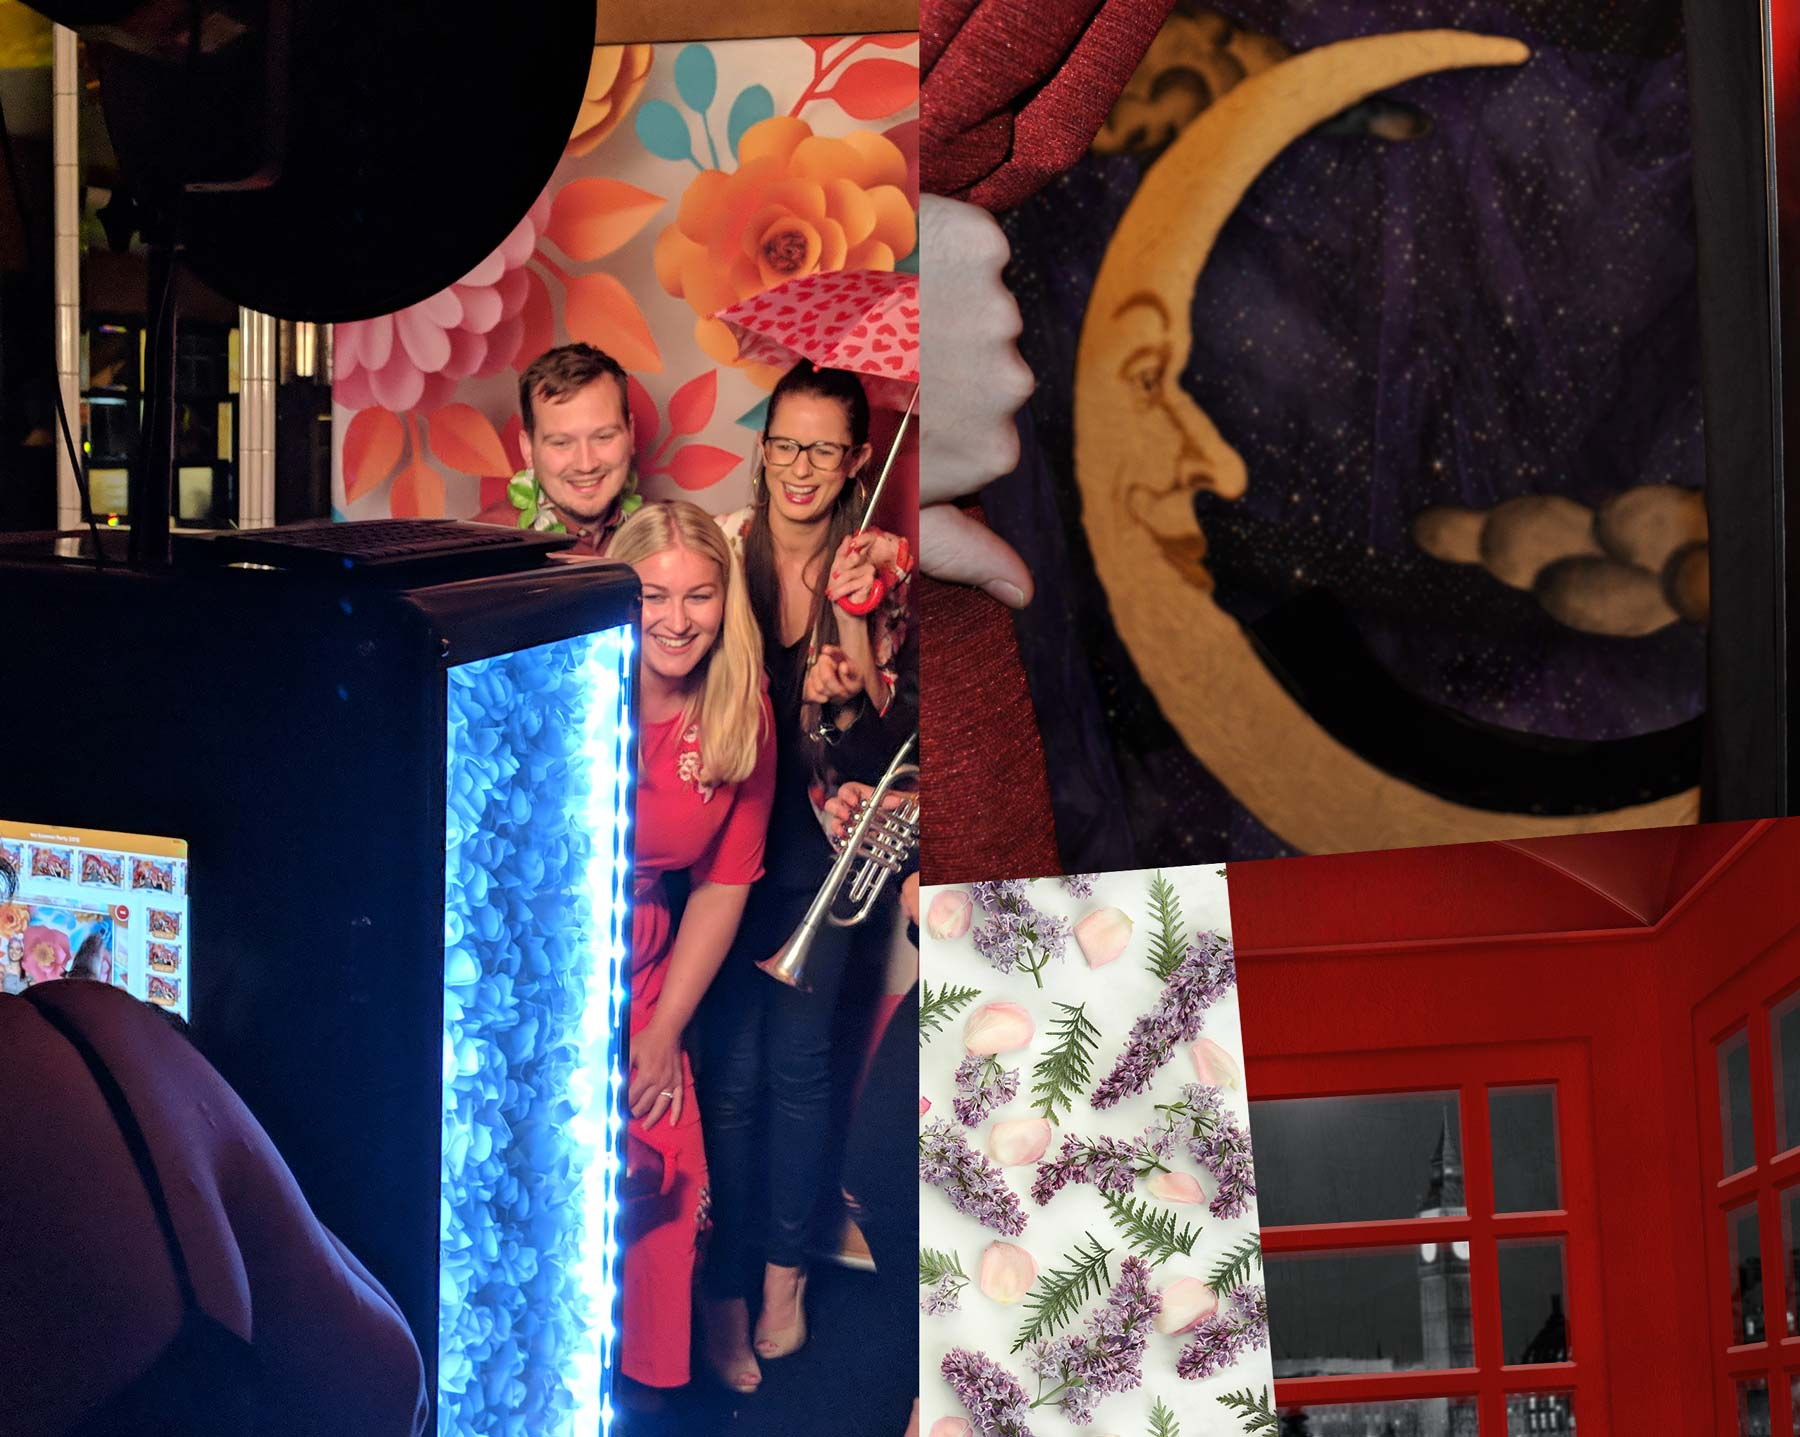 A selection of themed backdrops and scenery options for our photo booths